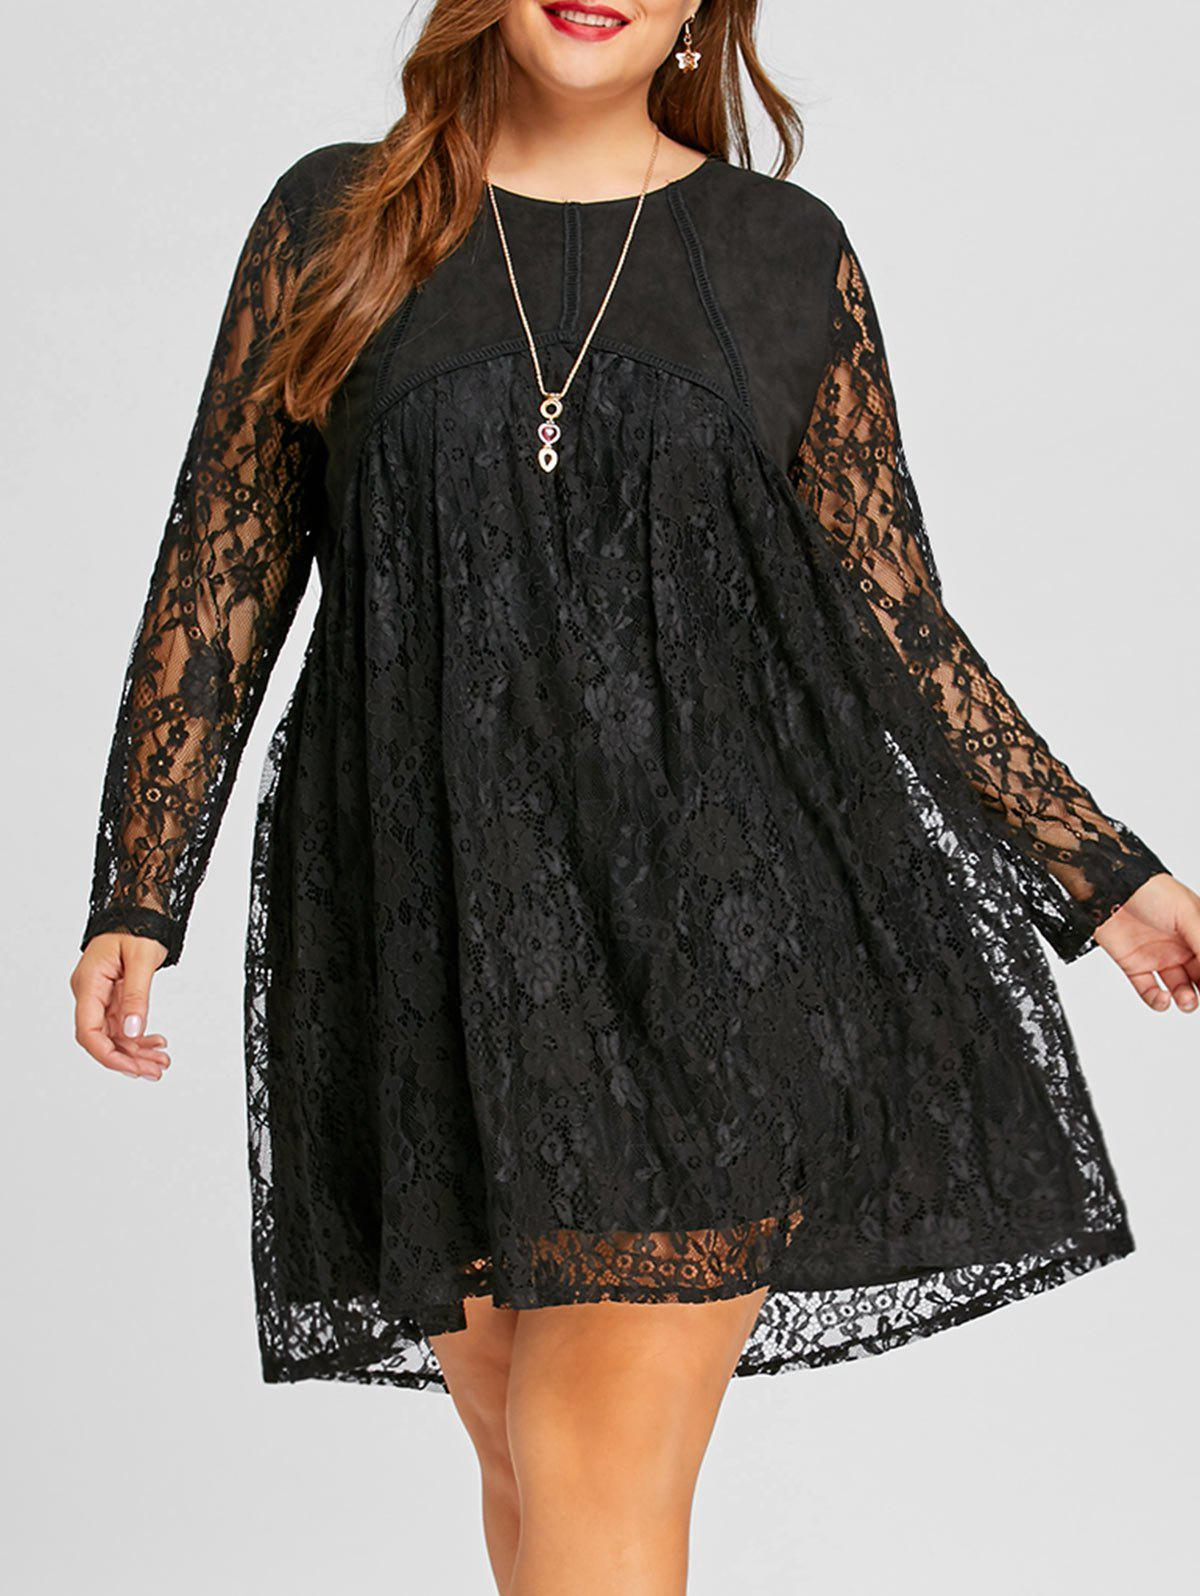 Lace Plus Size Long Sleeve Shift DressWOMEN<br><br>Size: 3XL; Color: BLACK; Style: Cute; Material: Polyester,Spandex; Silhouette: Straight; Dresses Length: Mini; Neckline: Round Collar; Sleeve Length: Long Sleeves; Embellishment: Lace; Pattern Type: Solid; With Belt: No; Season: Fall,Spring; Weight: 0.4850kg; Package Contents: 1 x Dress;